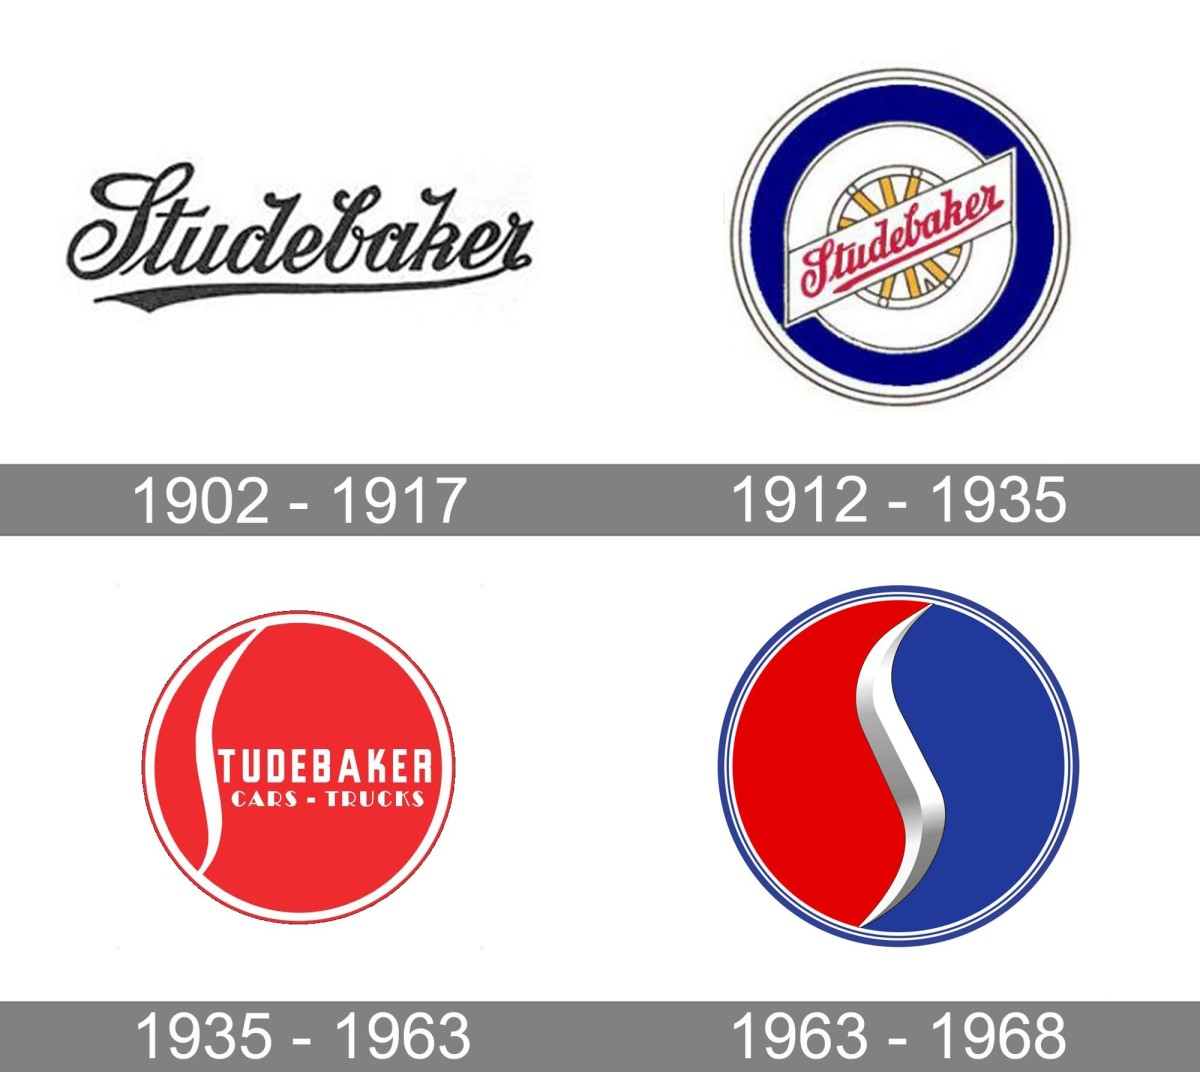 In 1930, the auto manufacturer Studebaker  built 123,215 vehicles.